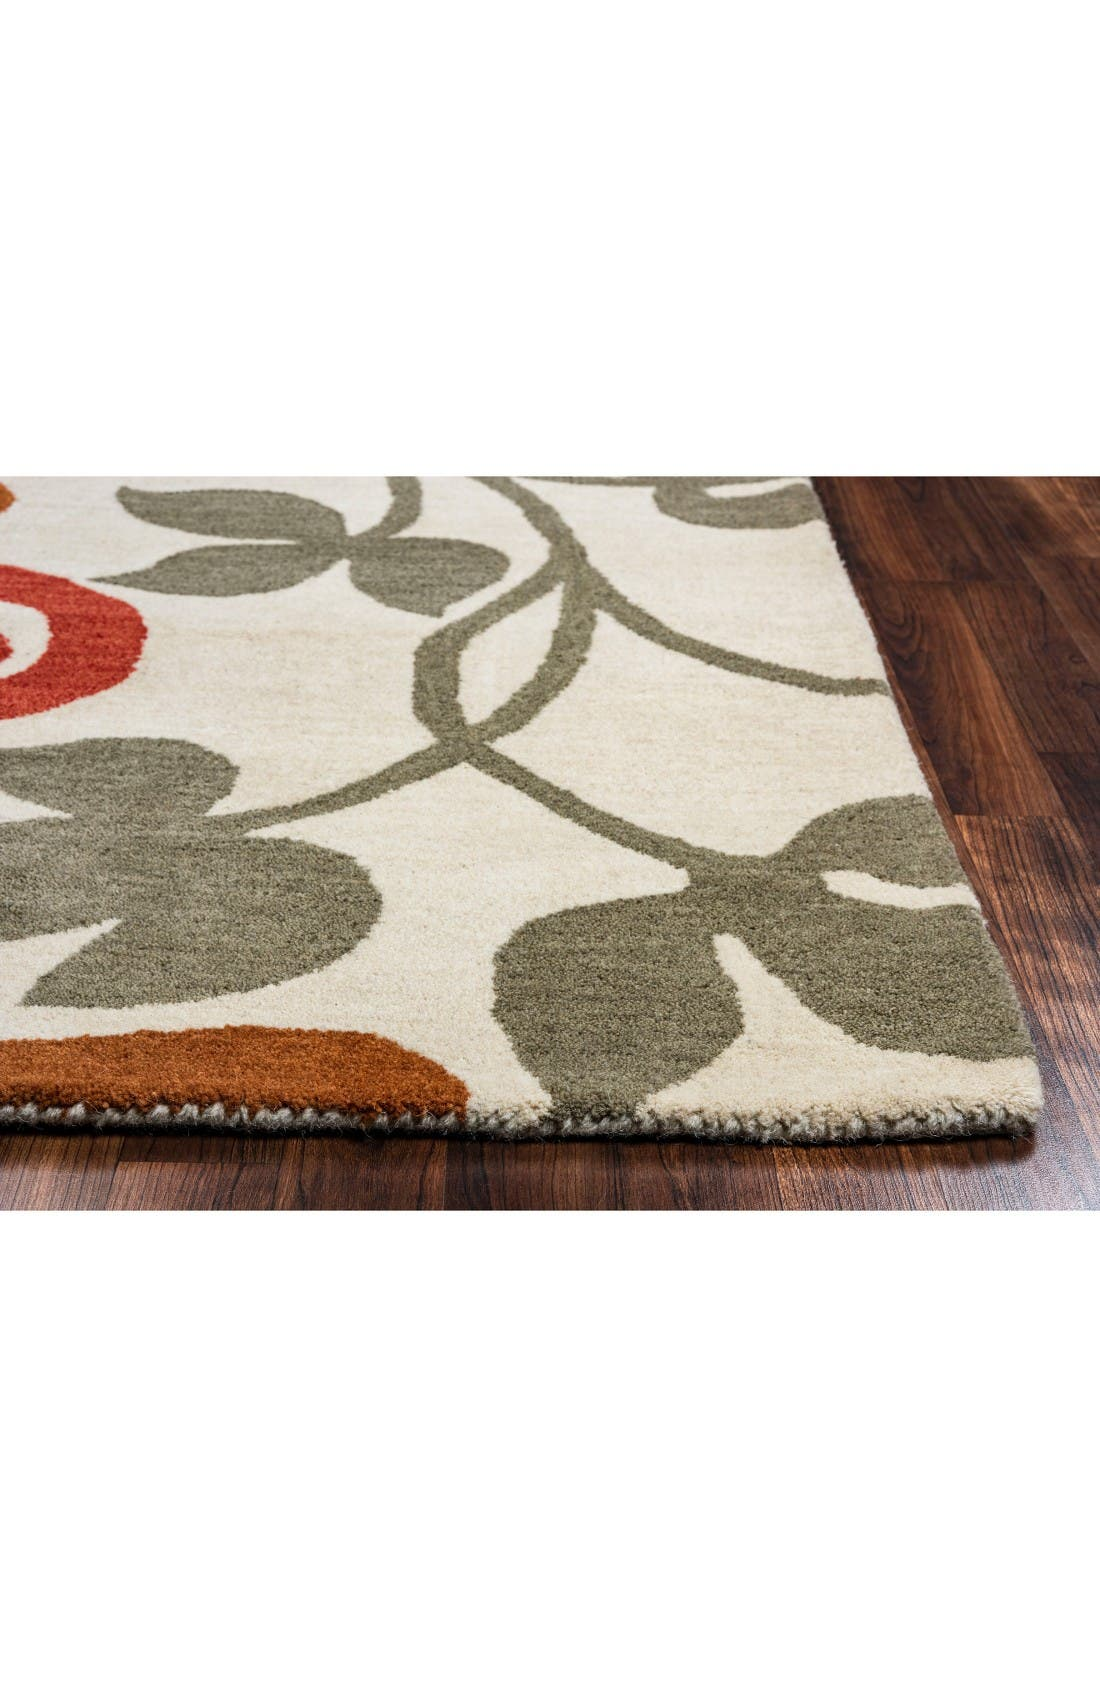 Zoe Hand Tufted Wool Area Rug,                             Alternate thumbnail 2, color,                             Ivory/ Multi